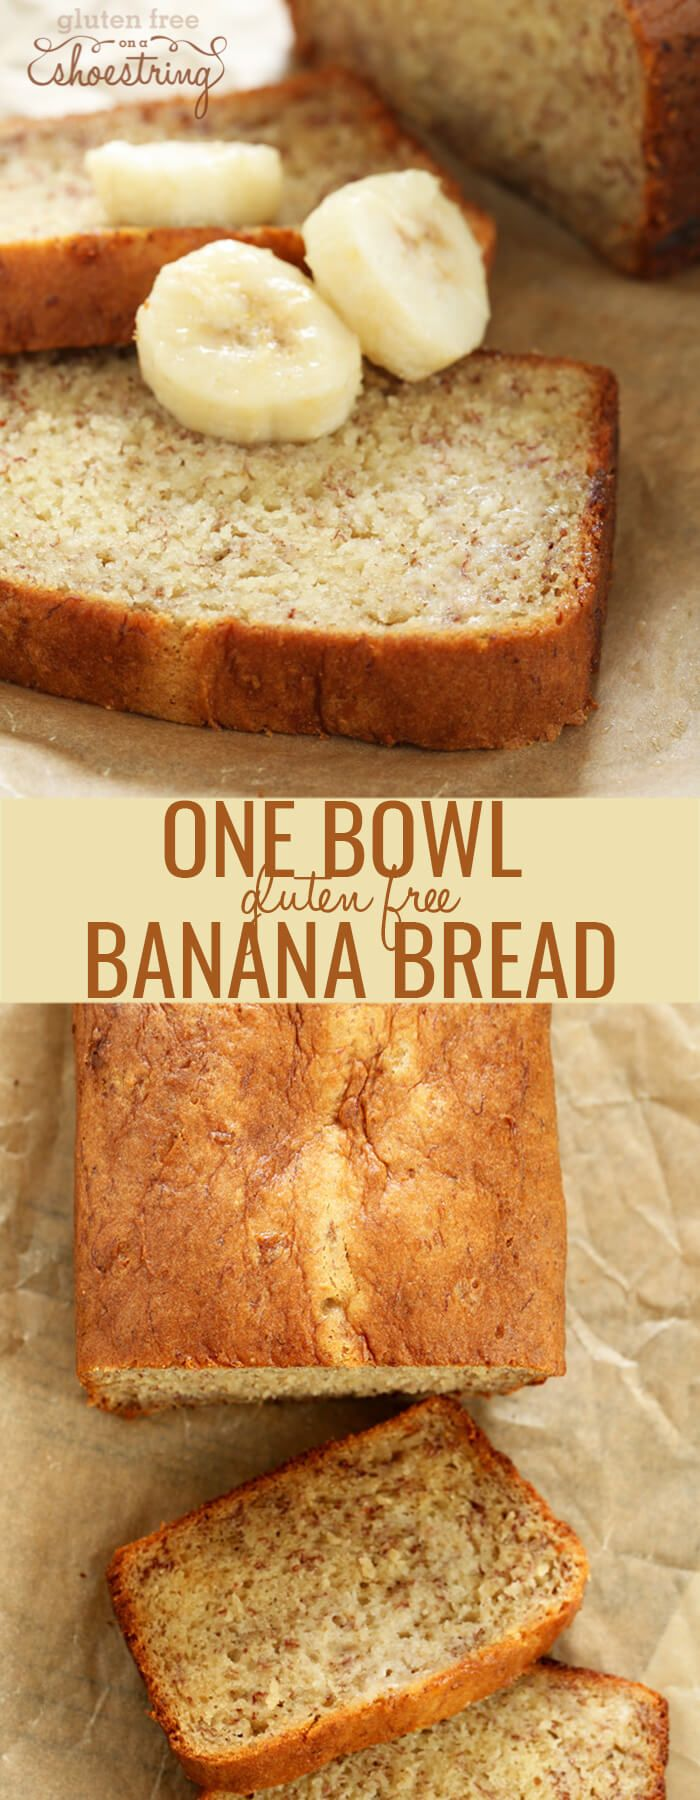 Moist, tender gluten free banana bread made the quick and easy way, in one bowl. Add nuts, make it into banana muffins. Make it your own!